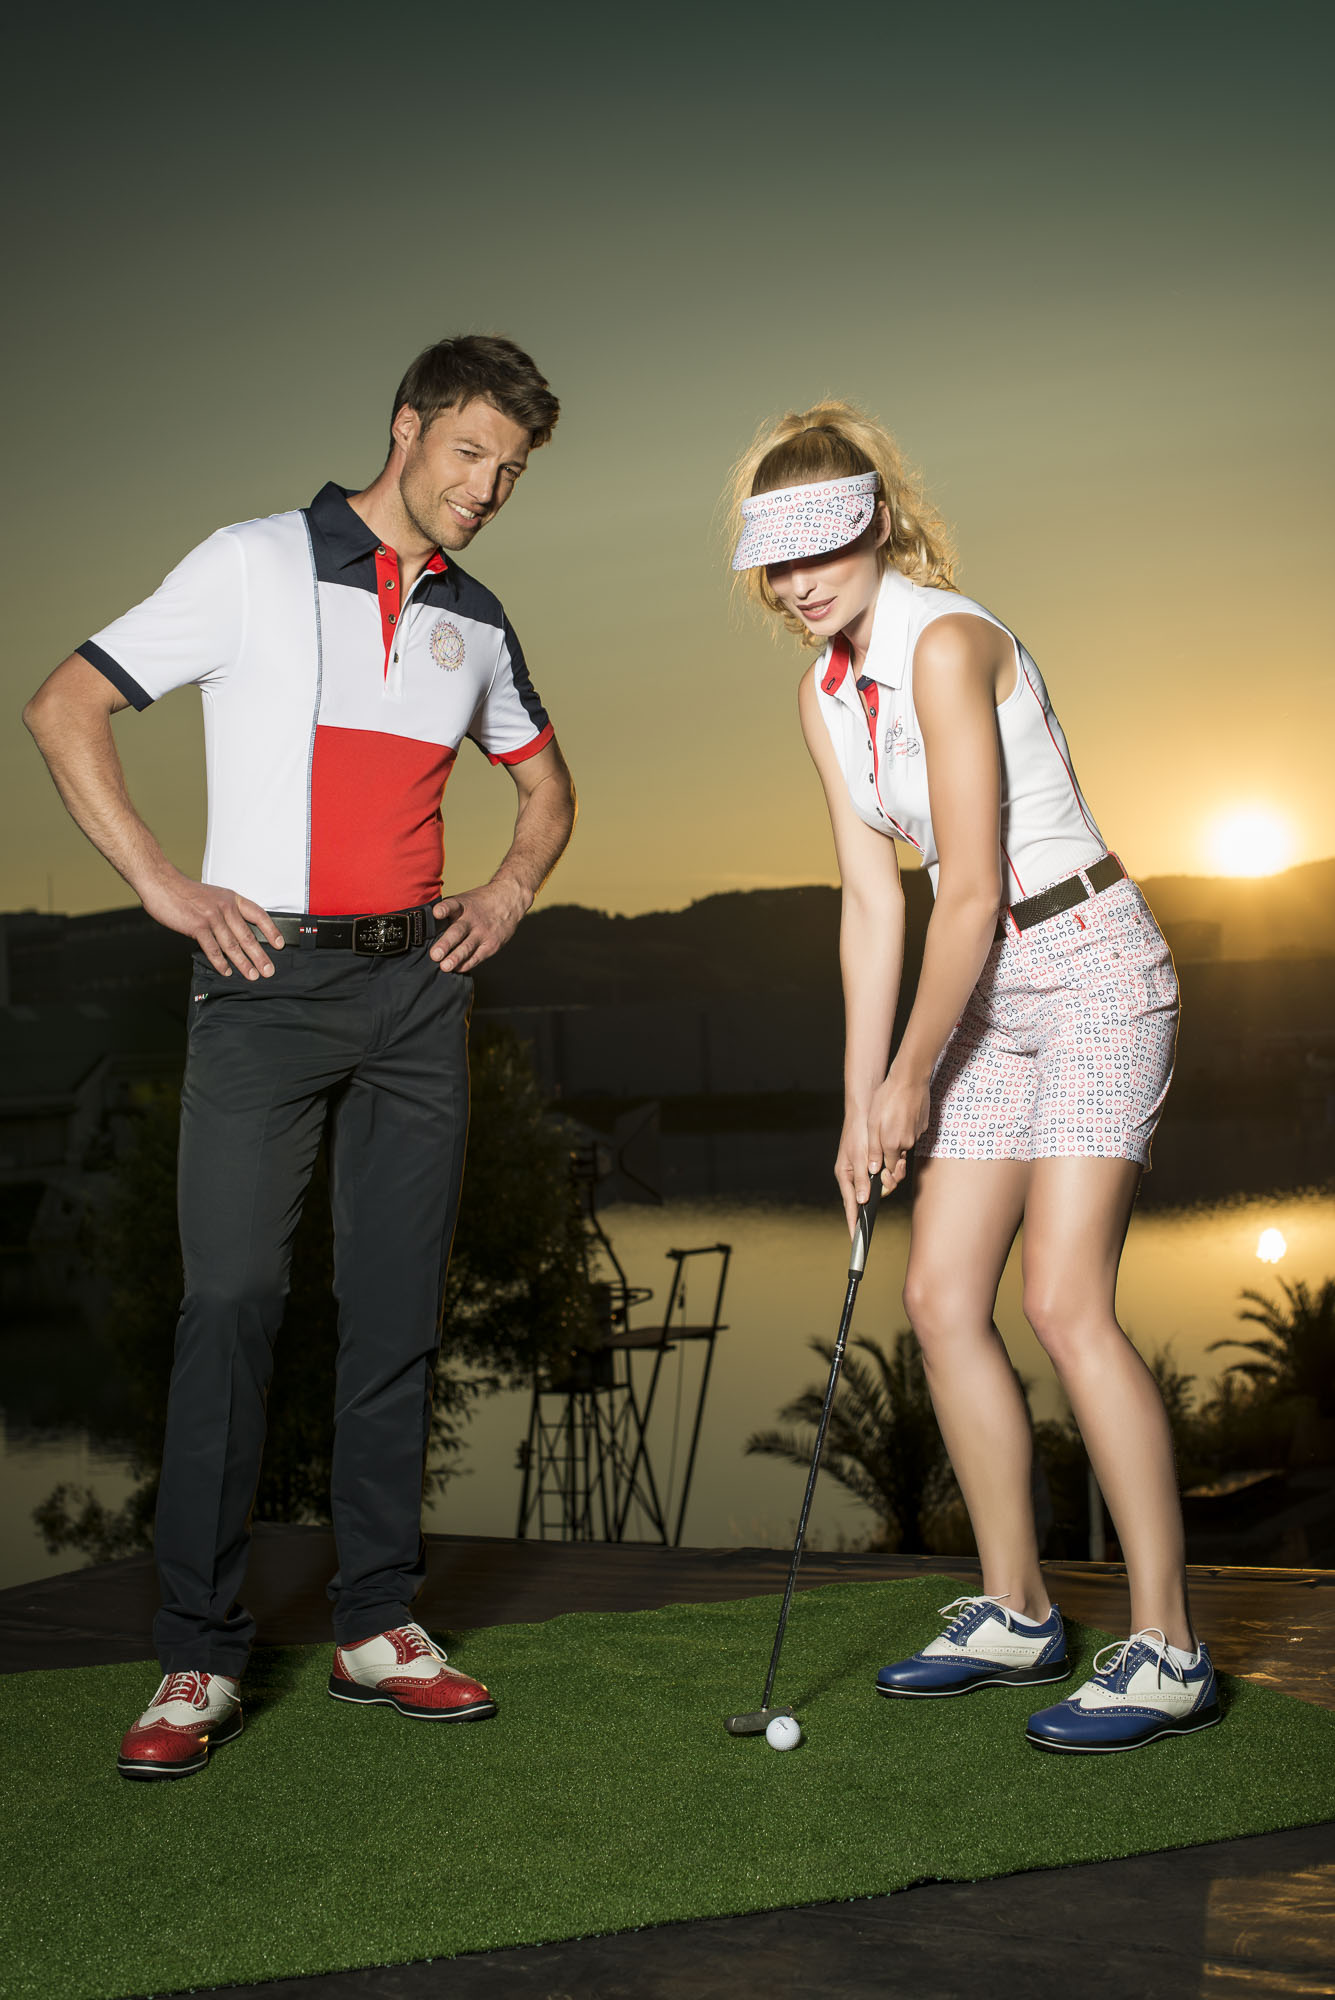 gortana_photo_Golfmode_I_05